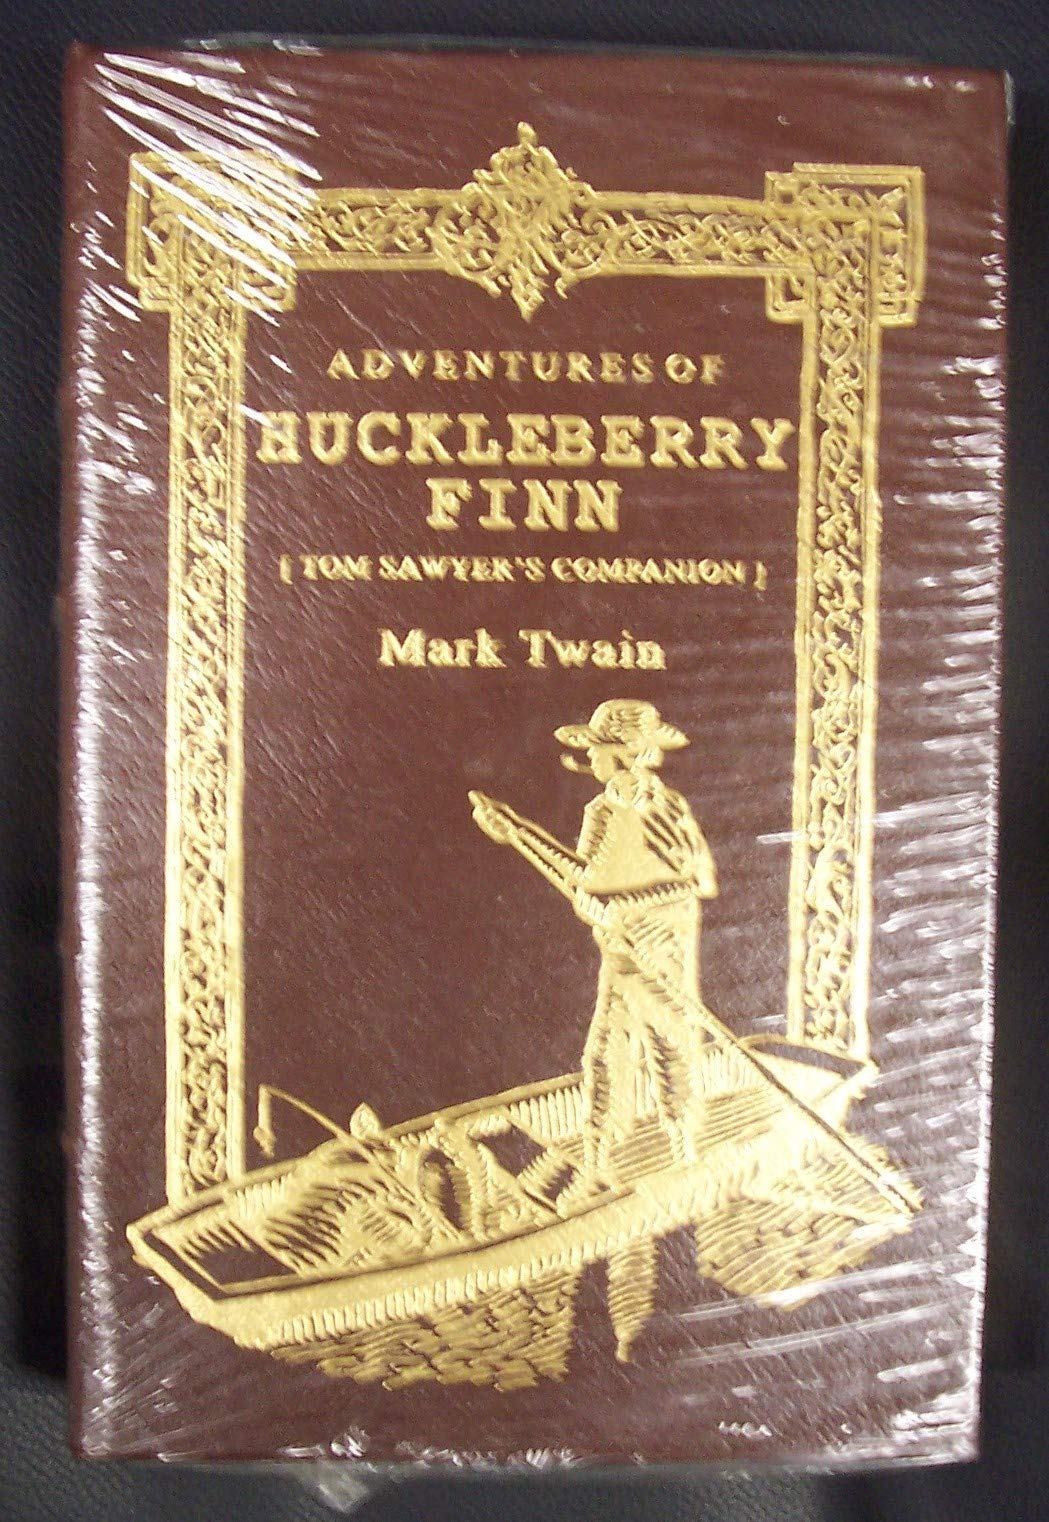 Download The Adventures of Huckleberry Finn: Tom Sawyer's Companion (2008 Brown Leatherbound Hardcover Easton Press Deluxe Limited Collector's Edition Printing, 0677068573) PDF